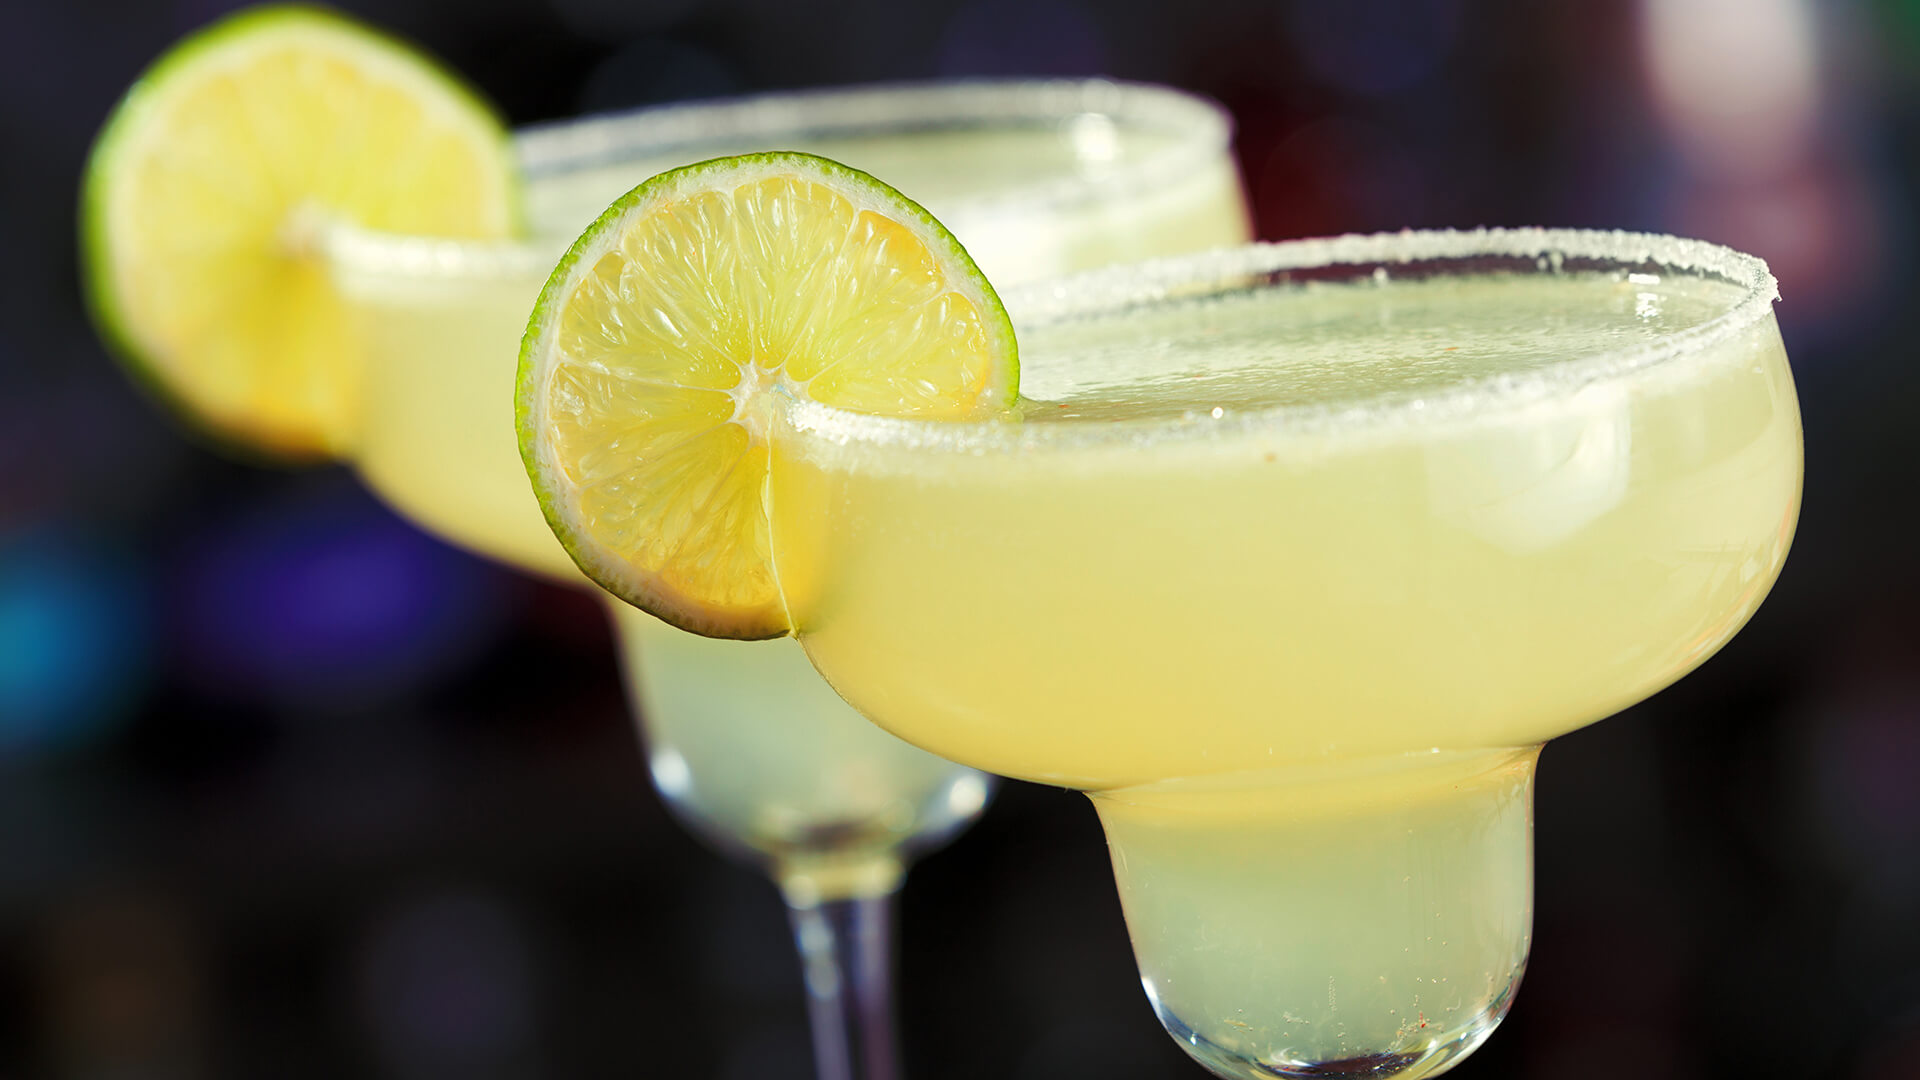 25 Restaurants Where You Can Sip and Save on National Margarita Day